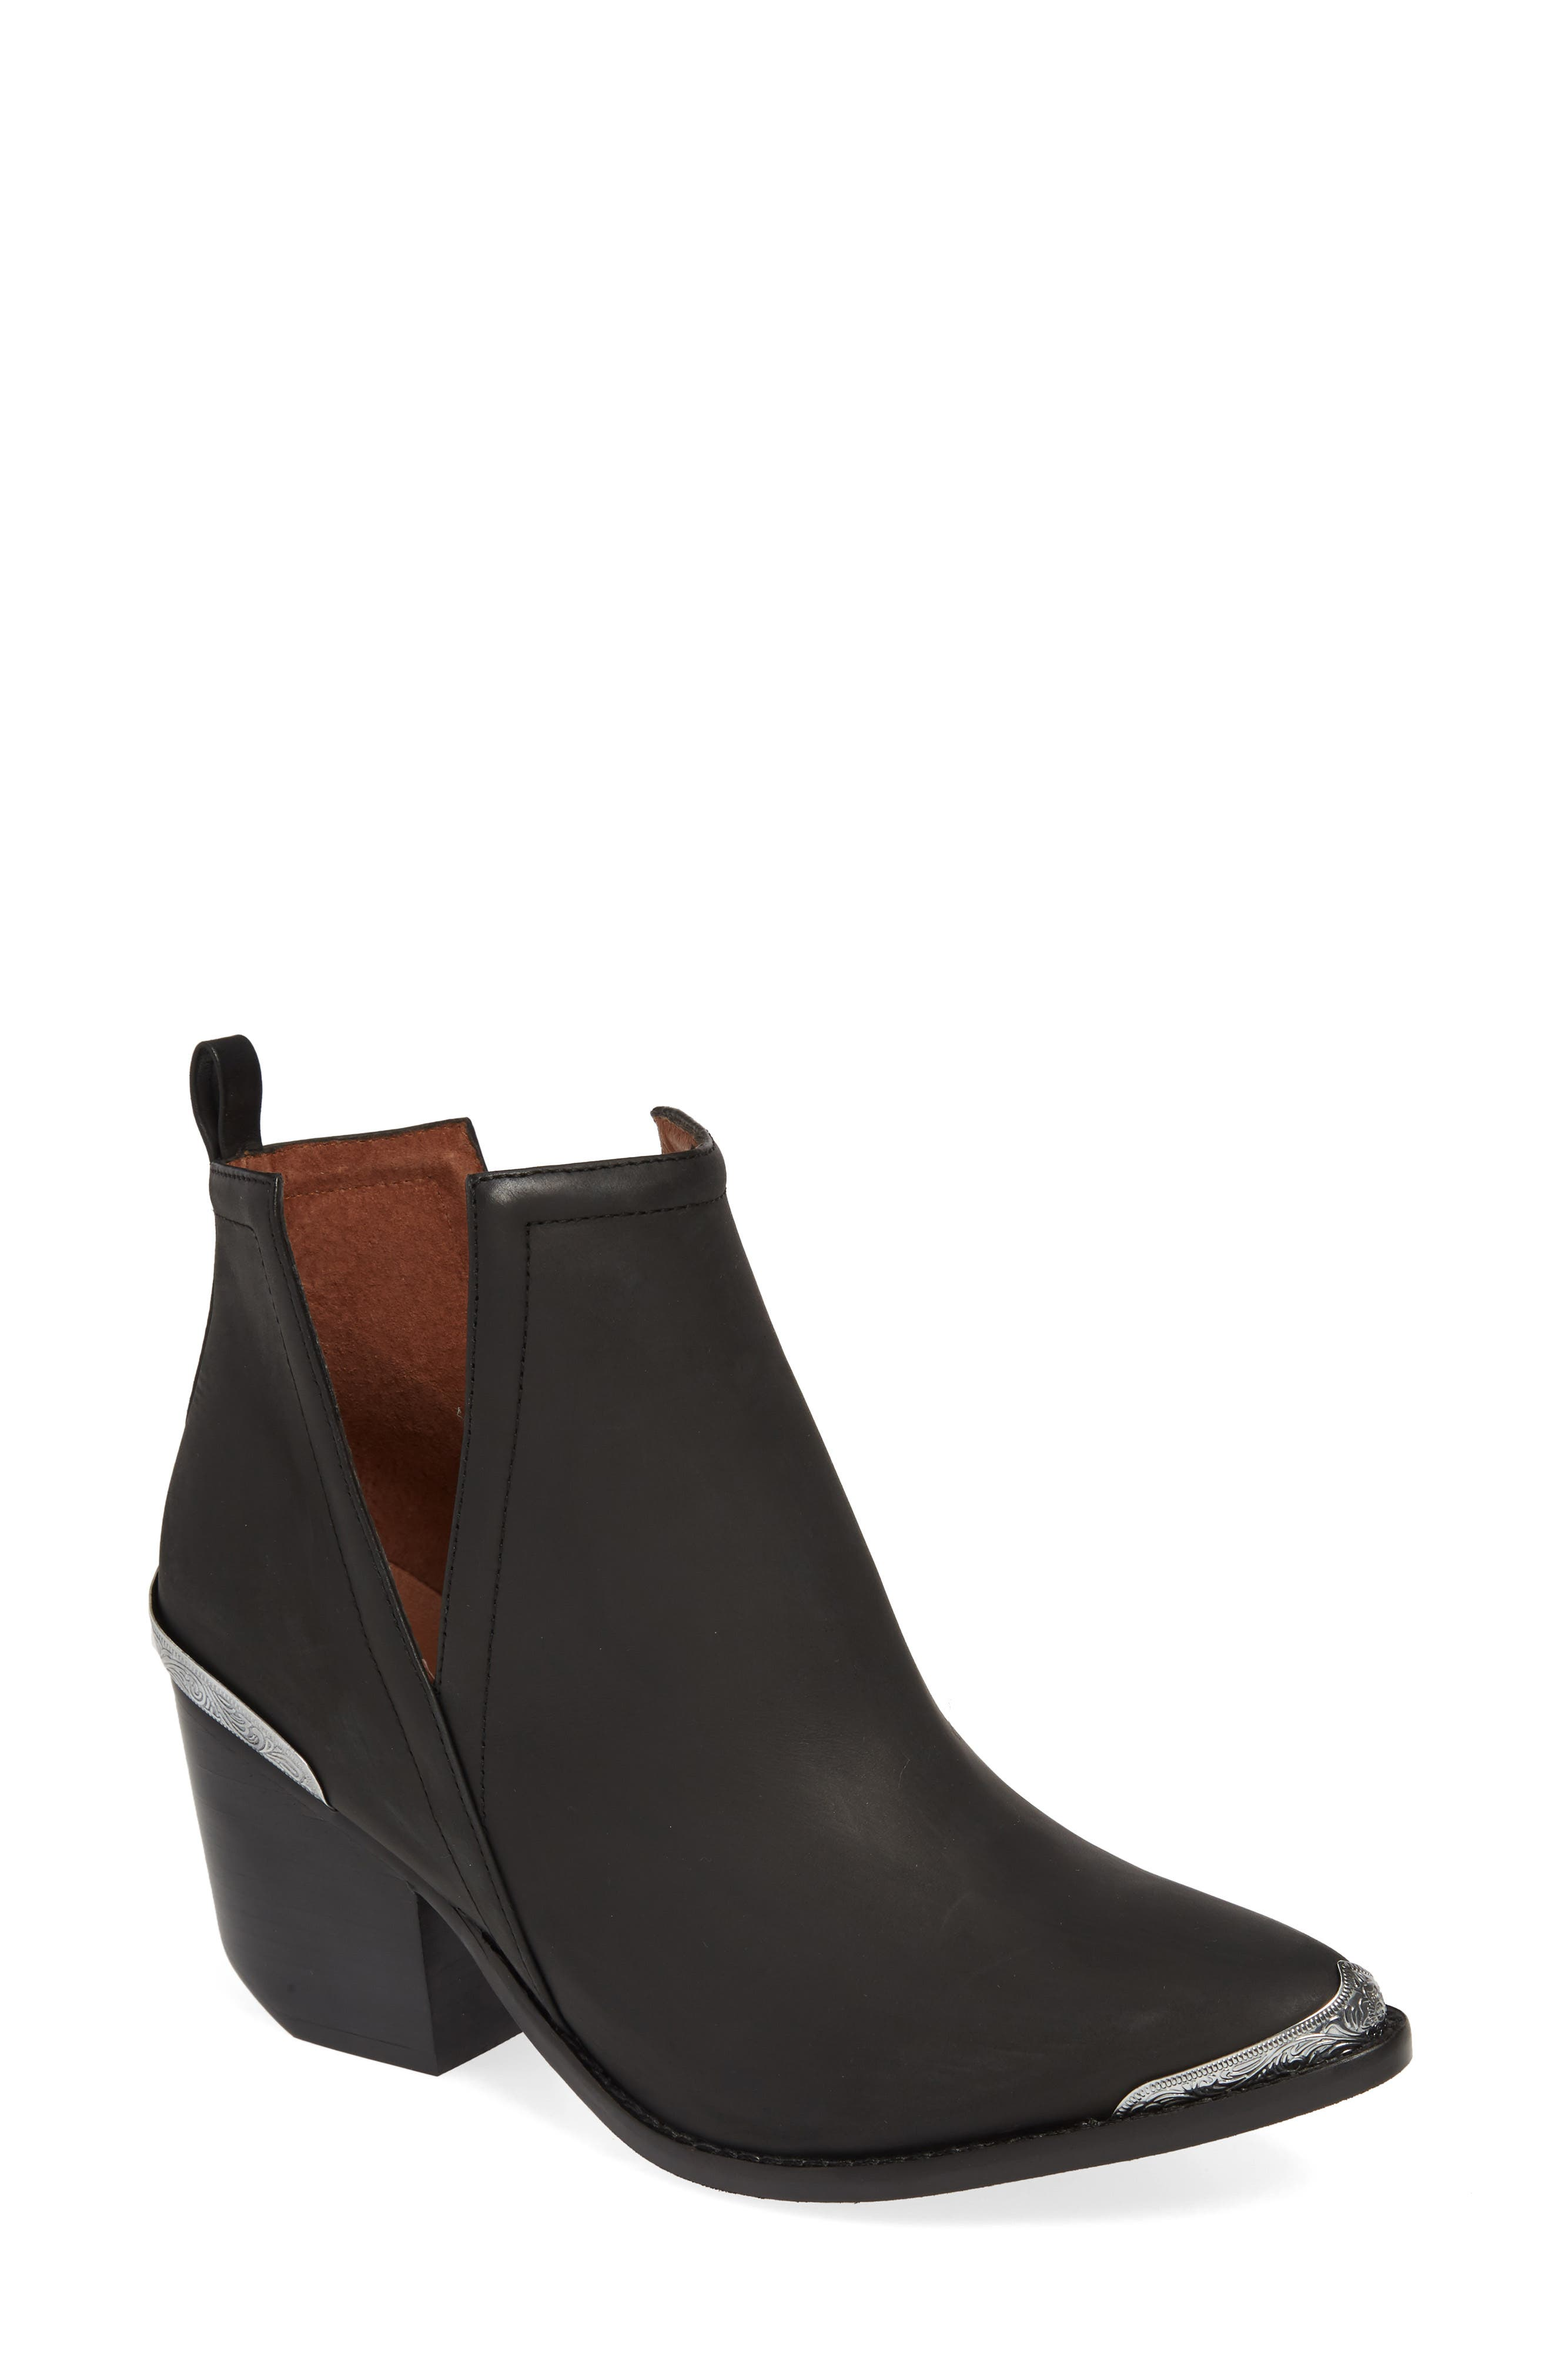 JEFFREY CAMPBELL, Cromwell Cutout Western Boot, Alternate thumbnail 2, color, BLACK DISTRESSED